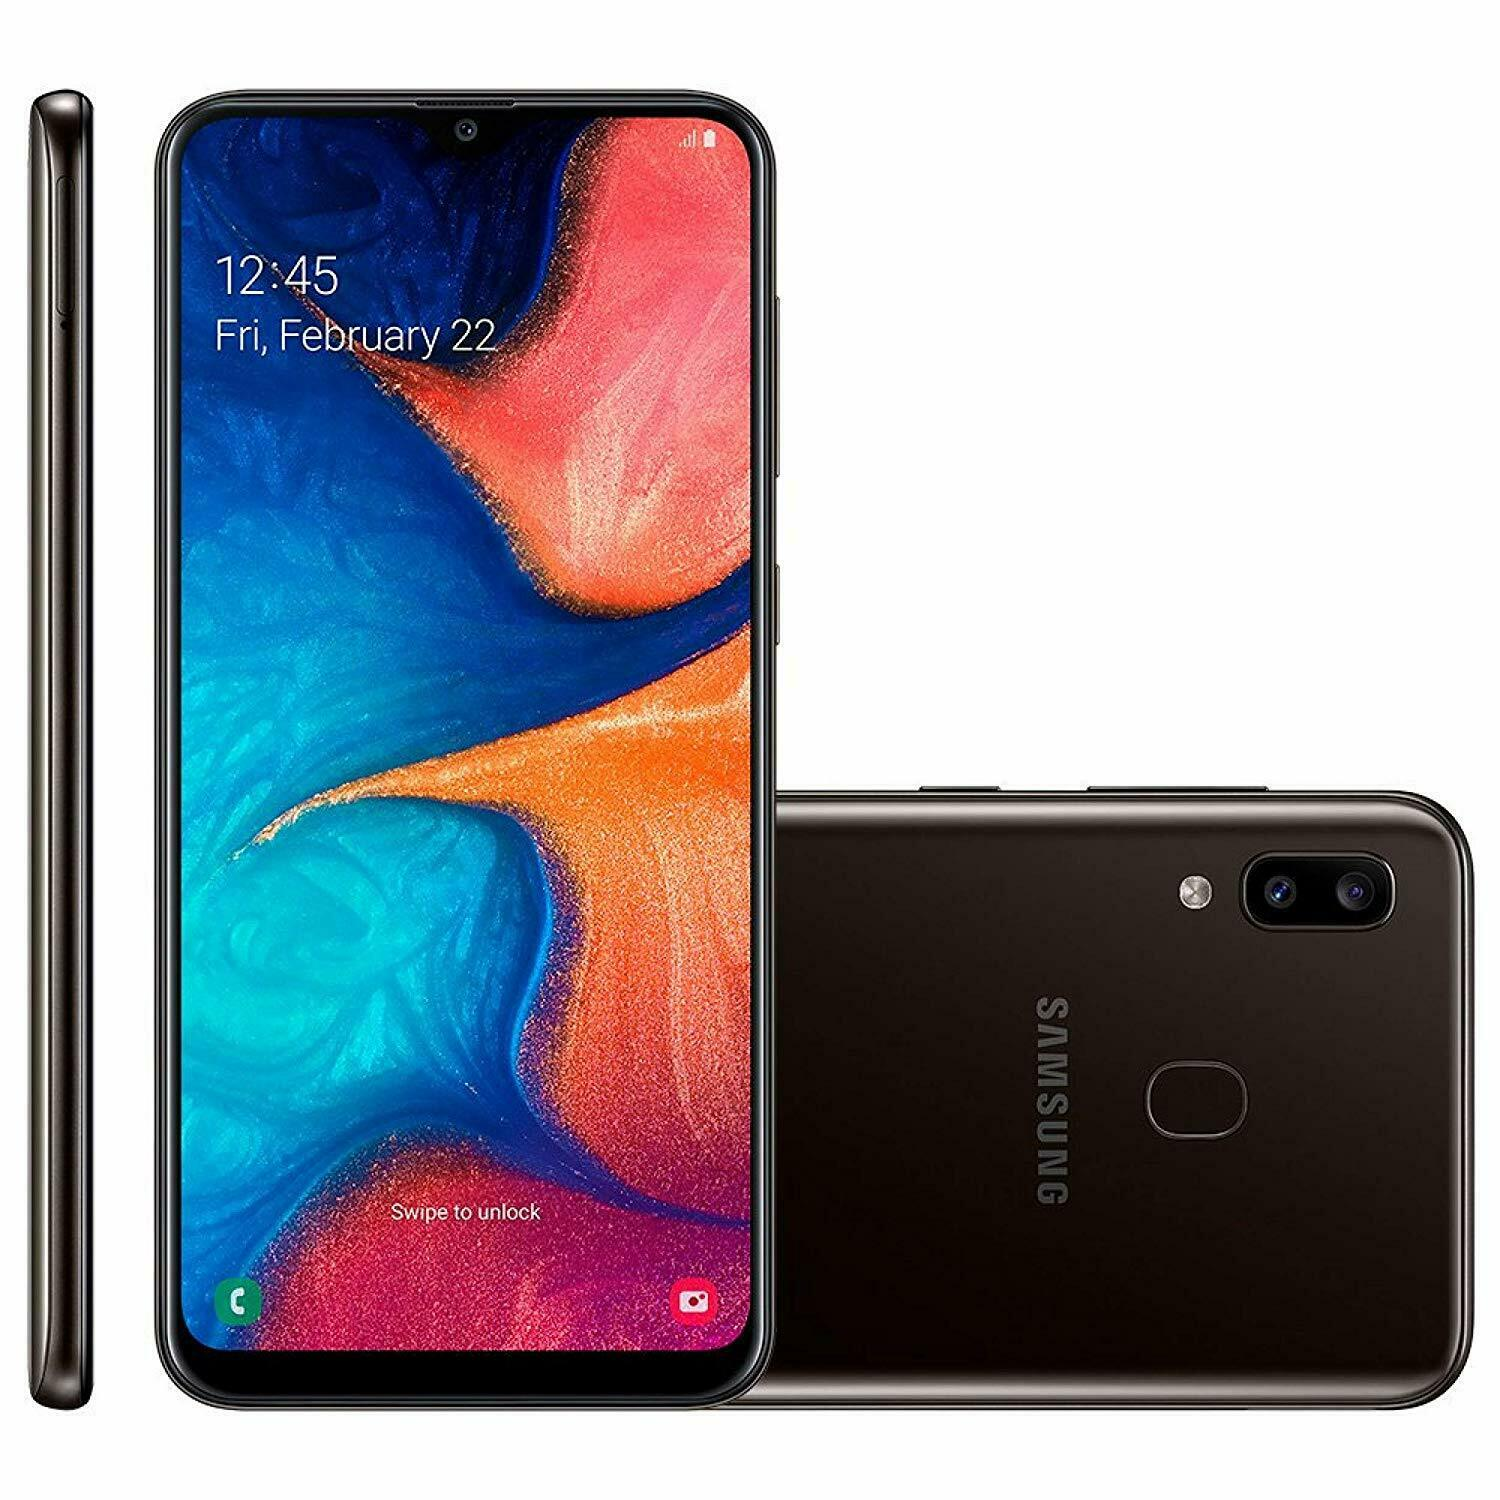 Android Phone - New Samsung Galaxy A20 32GB metroPCS ONLY